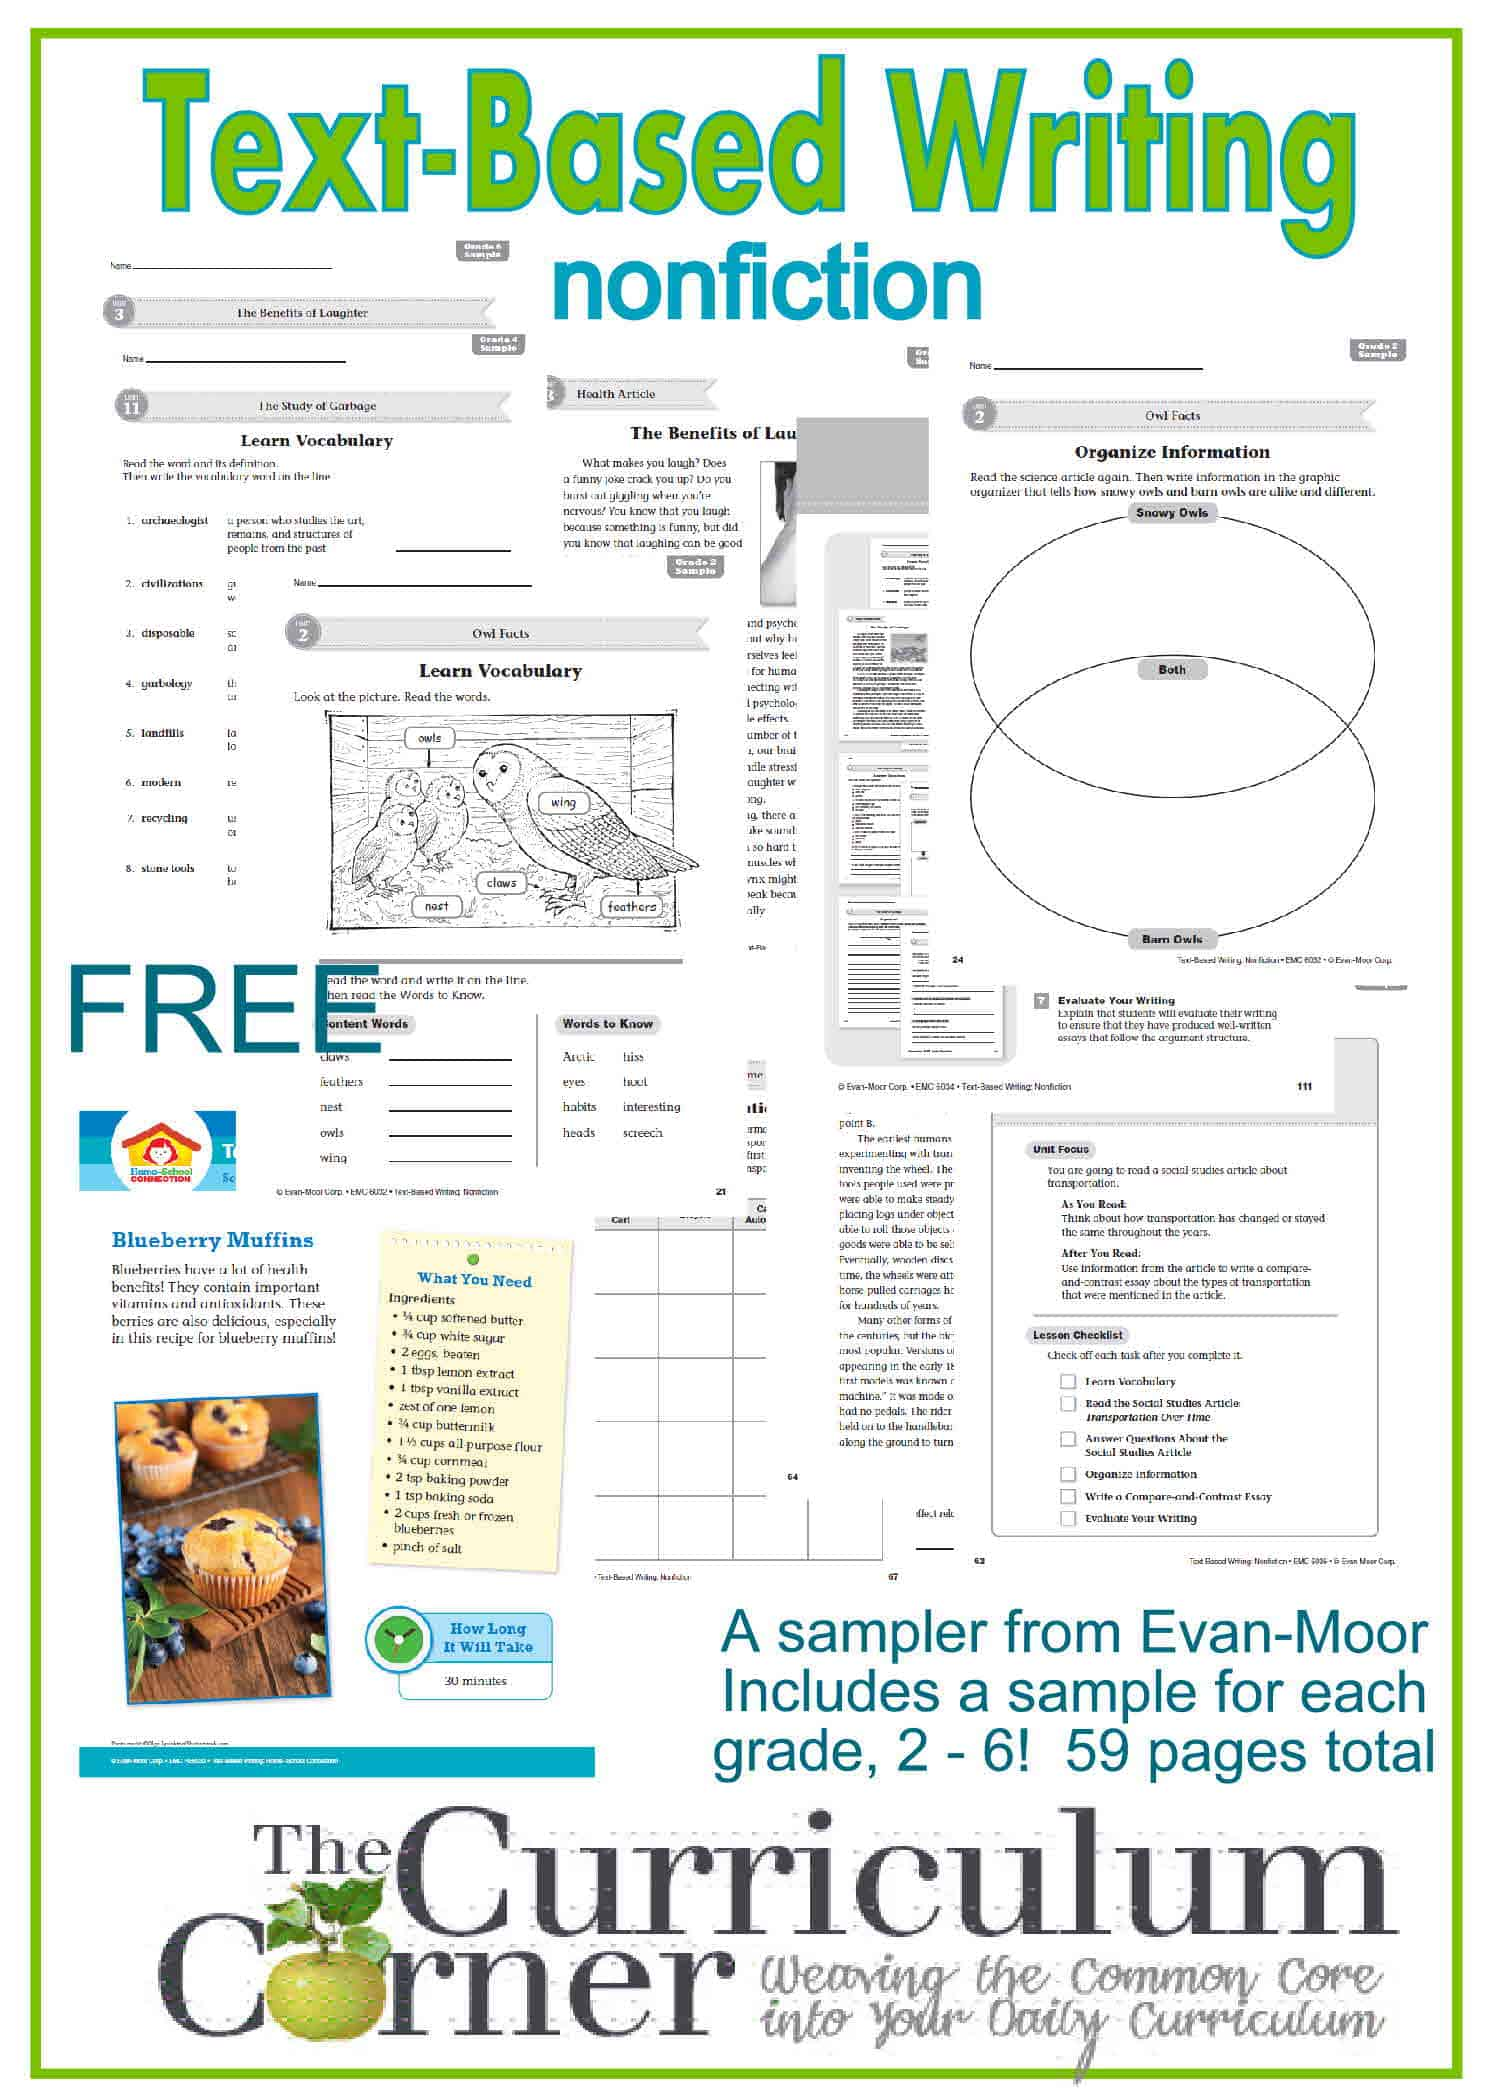 Text-Based Writing Resources & FREEBIE from Evan-Moor!